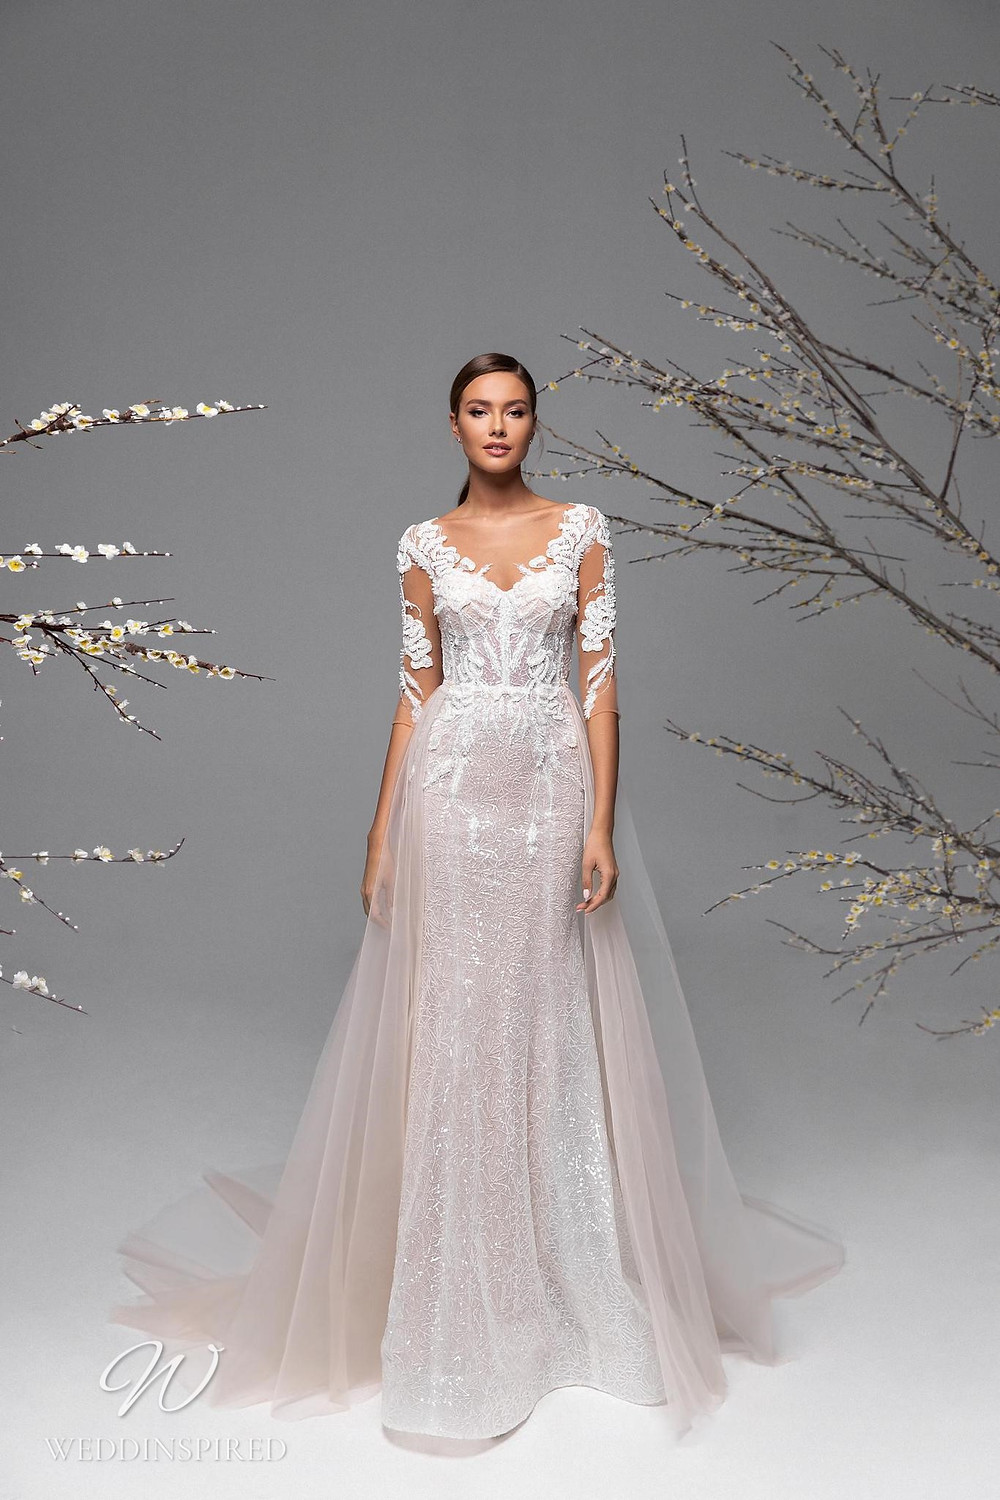 A Ricca Sposa blush lace and mesh column wedding dress with tulle detachable skirt